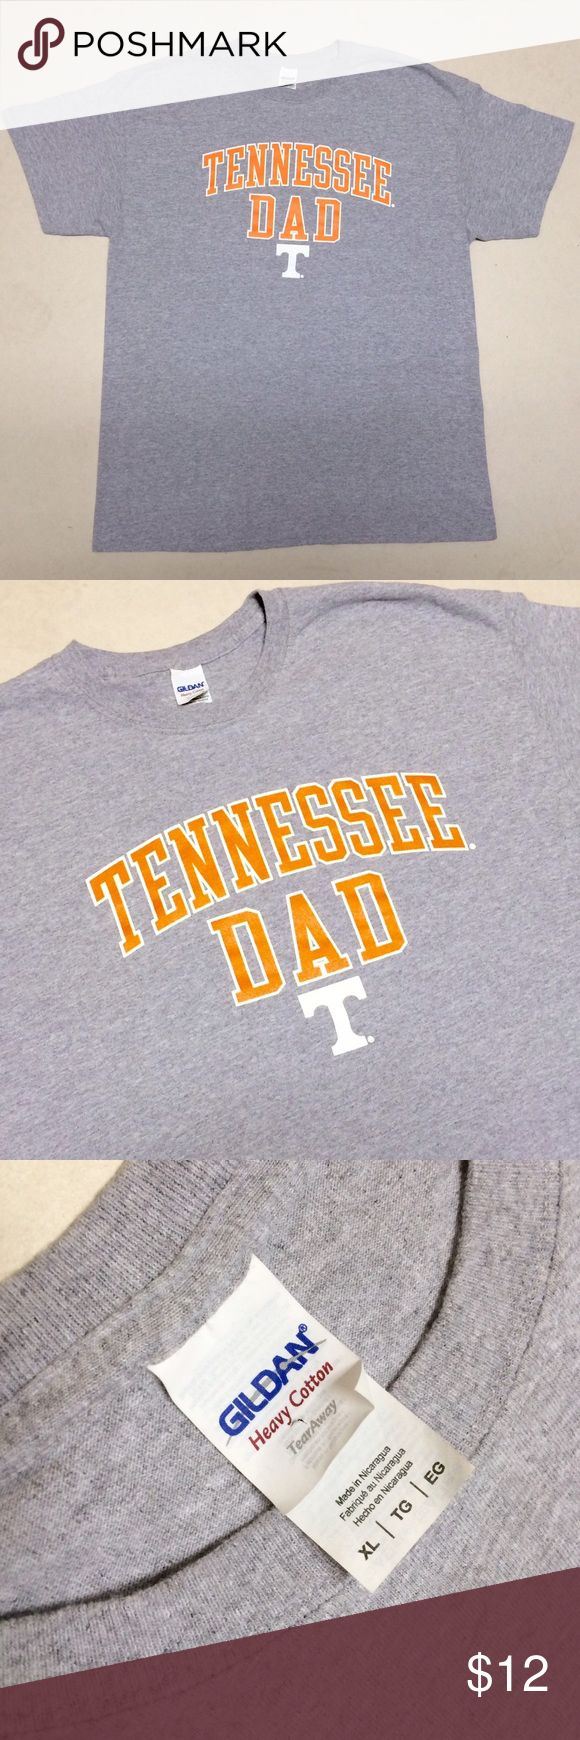 University of Tennessee - Men's T-shirt University of Tennessee  Tennessee Dad T-shirt  Men's Size XL   Great gift for Dad!! Go Vols!! Gildan Shirts Tees - Short Sleeve